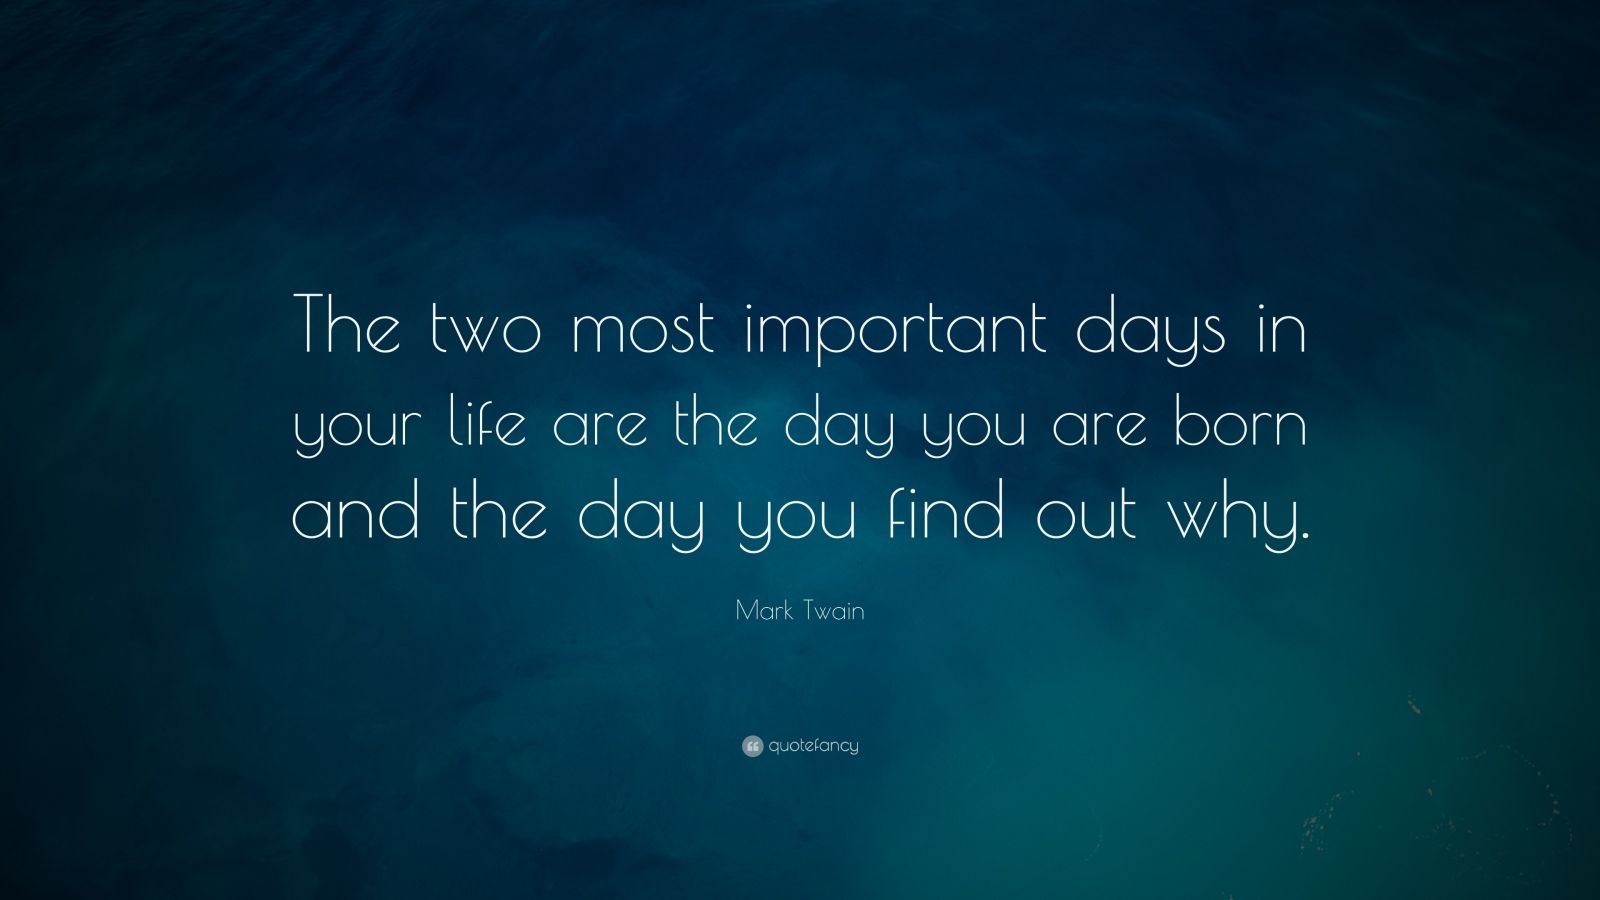 "Inspirational Quotes: ""The two most important days in your life are the day you are born and the day you find out why."" — Mark Twain"